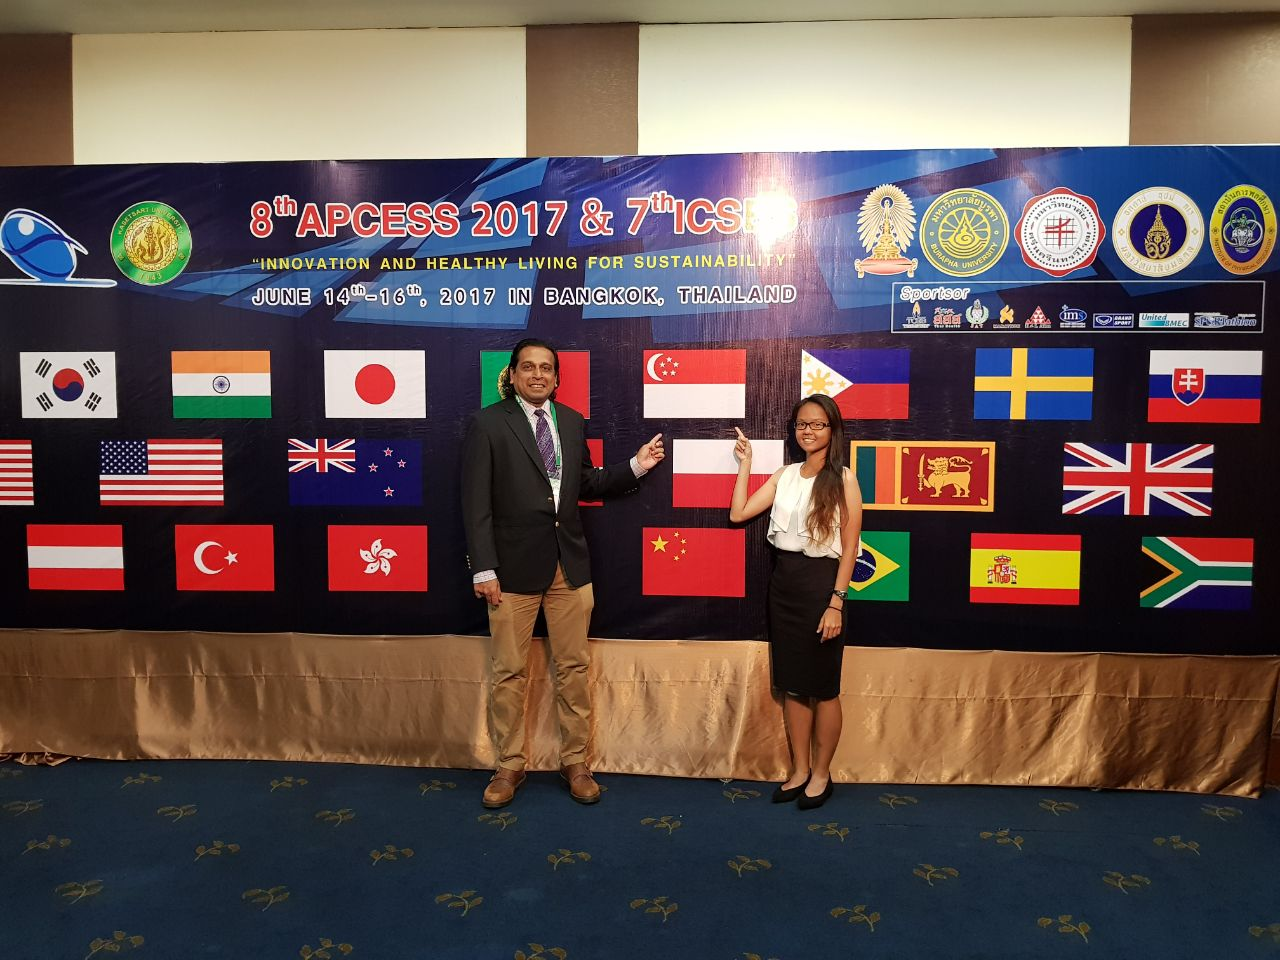 The 8th APCESS Conference 2017